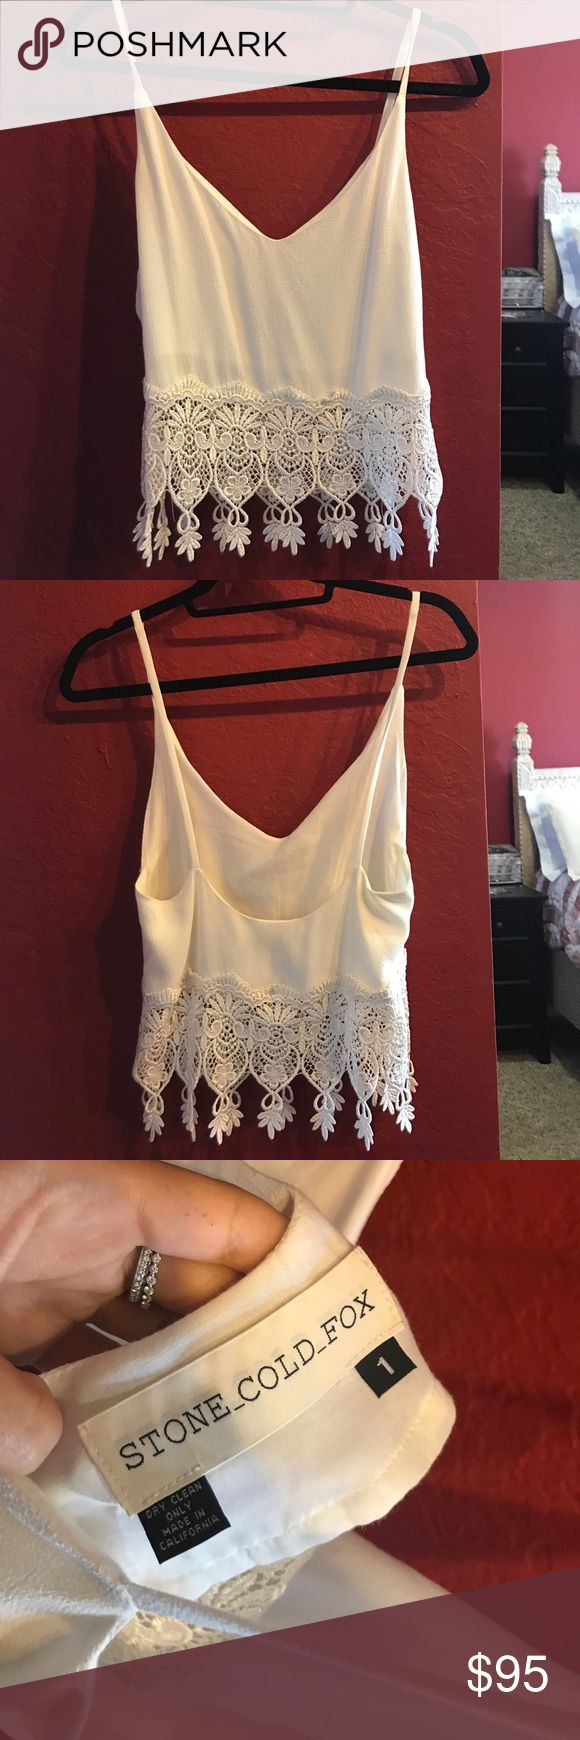 Stone cold fox lace shirt with low back Stone cold fox shirt with v neck front and thin straps with low back. Signature stone cold fox lace details all around the bottom. Not crop top but shows a bit of skin at the bottom. Size 1, worn once only, in perfect condition Stone Cold Fox Tops Camisoles